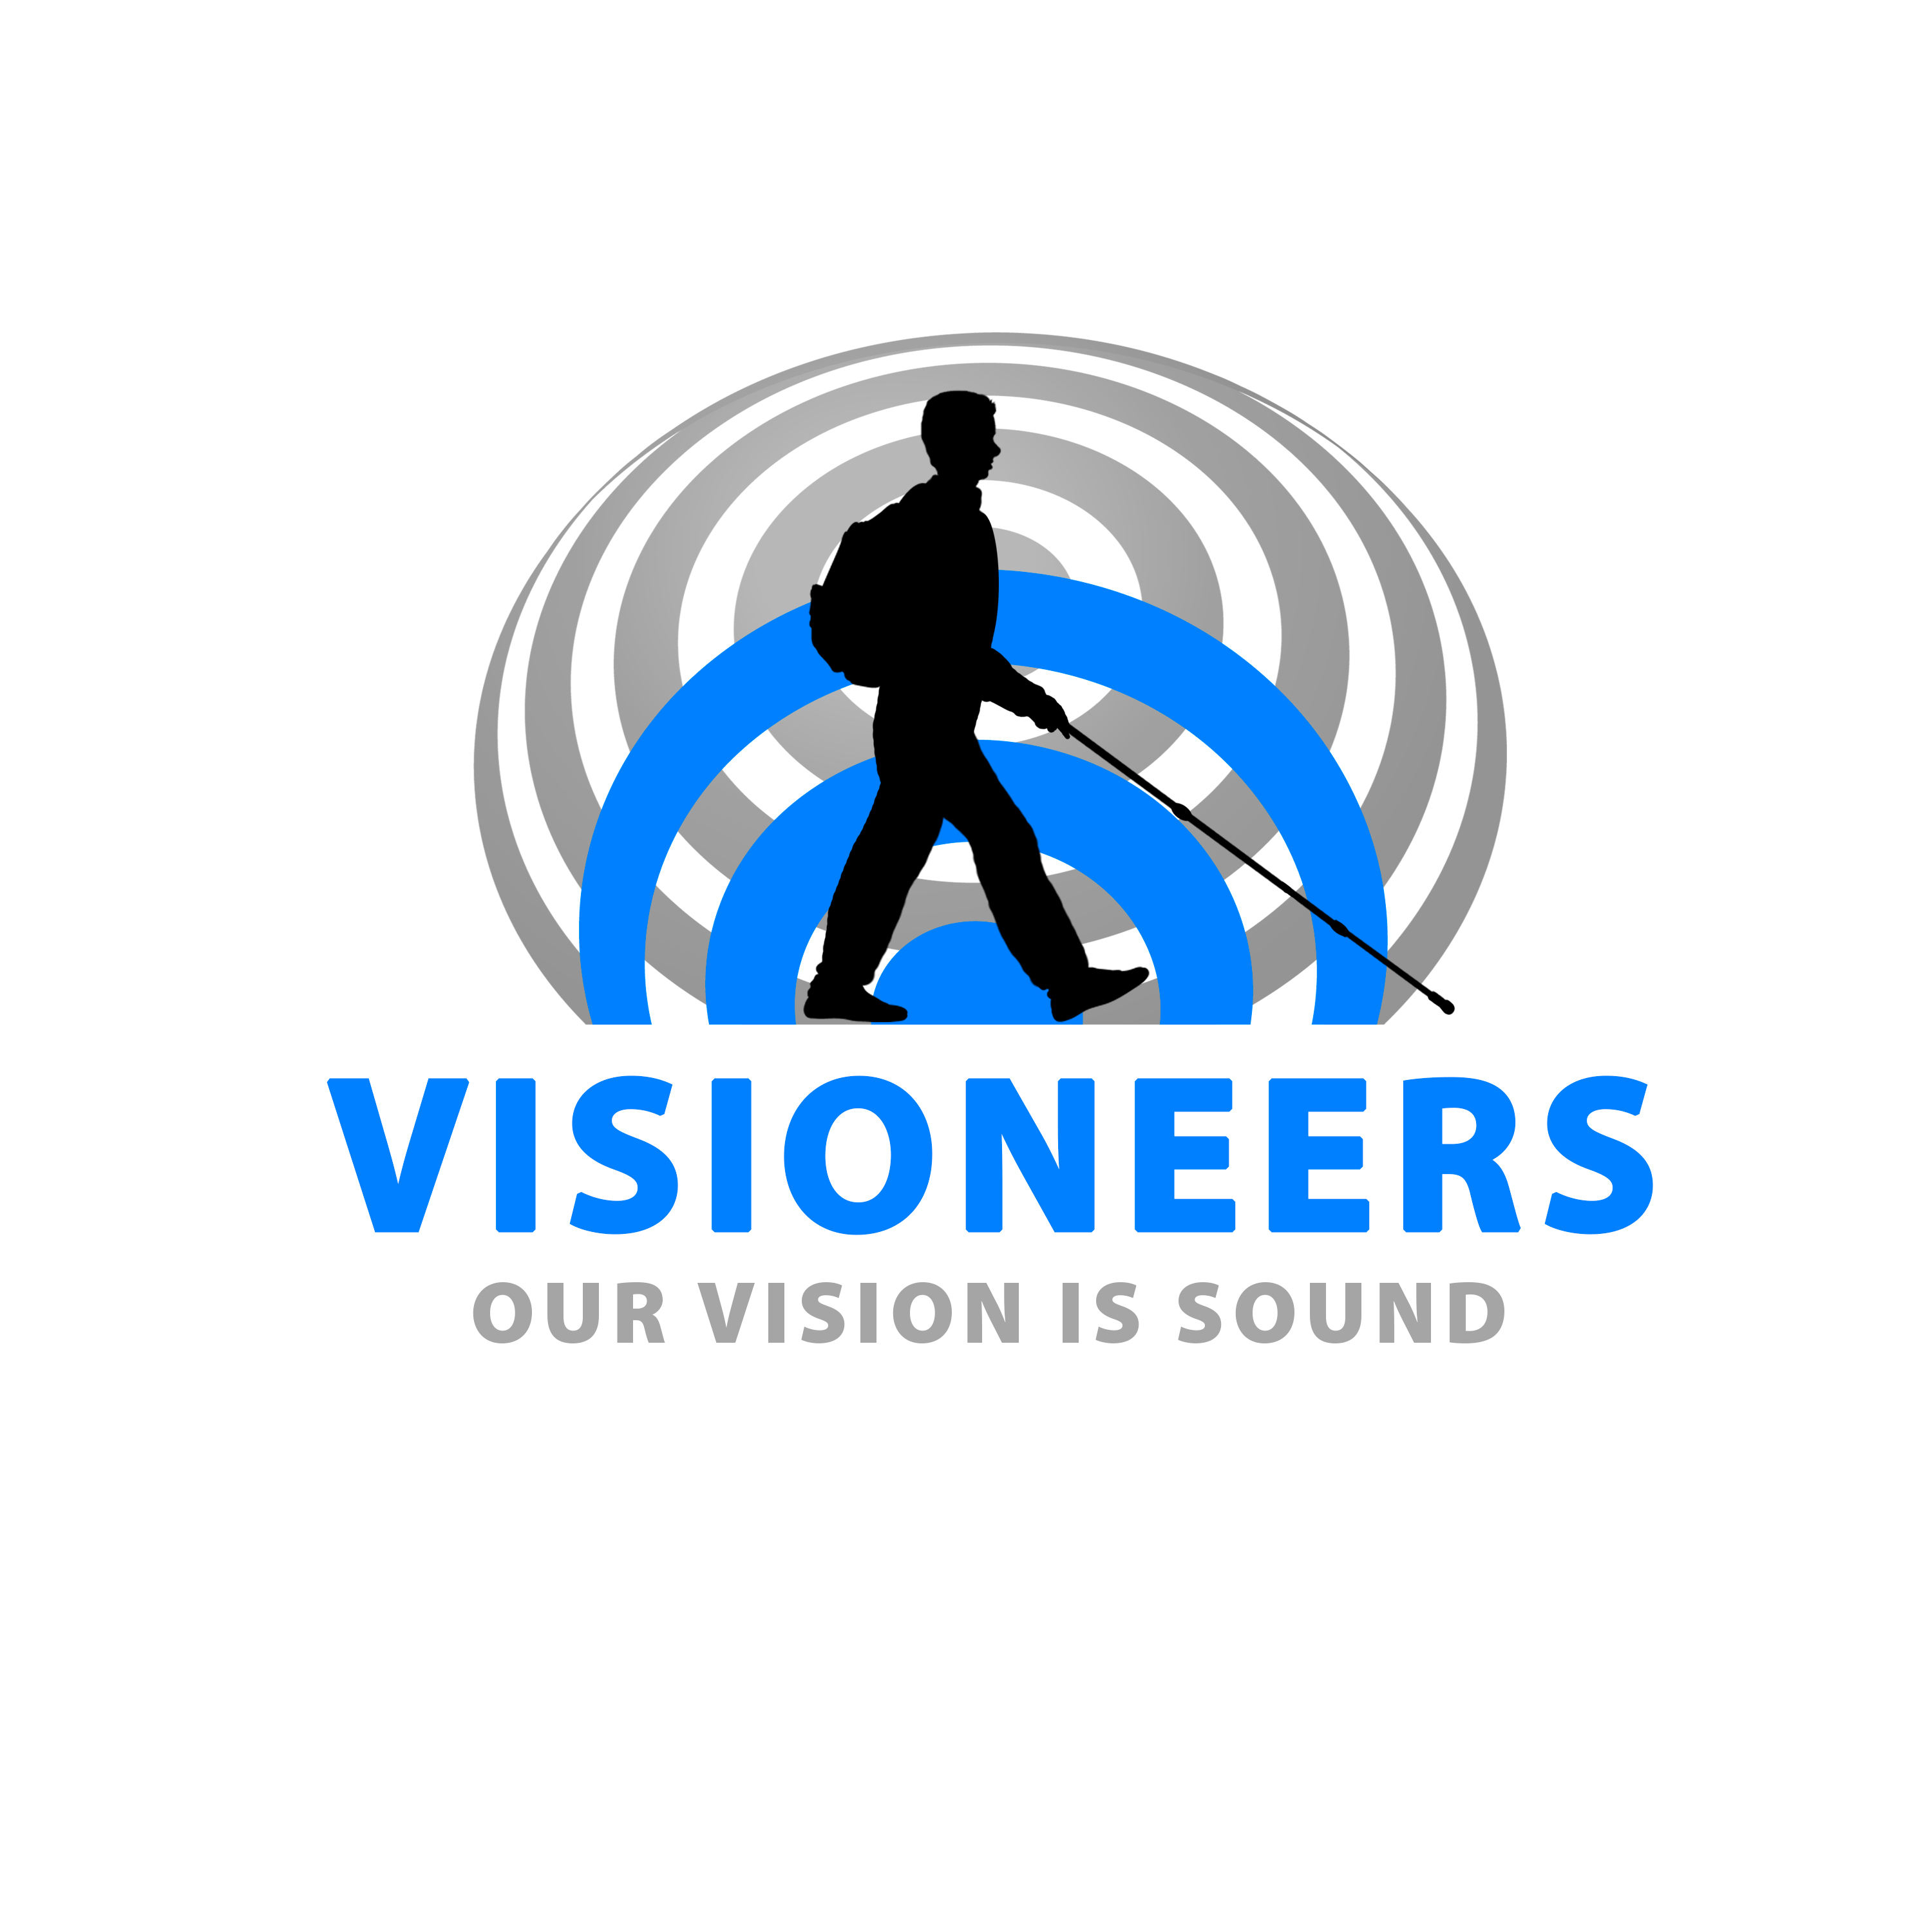 Visioneers 19. Black silhouette of Daniel against blue foreground sonar wave and grey background wave. Visioneers text in blue and Our Vision Is Sound in grey against a white background.